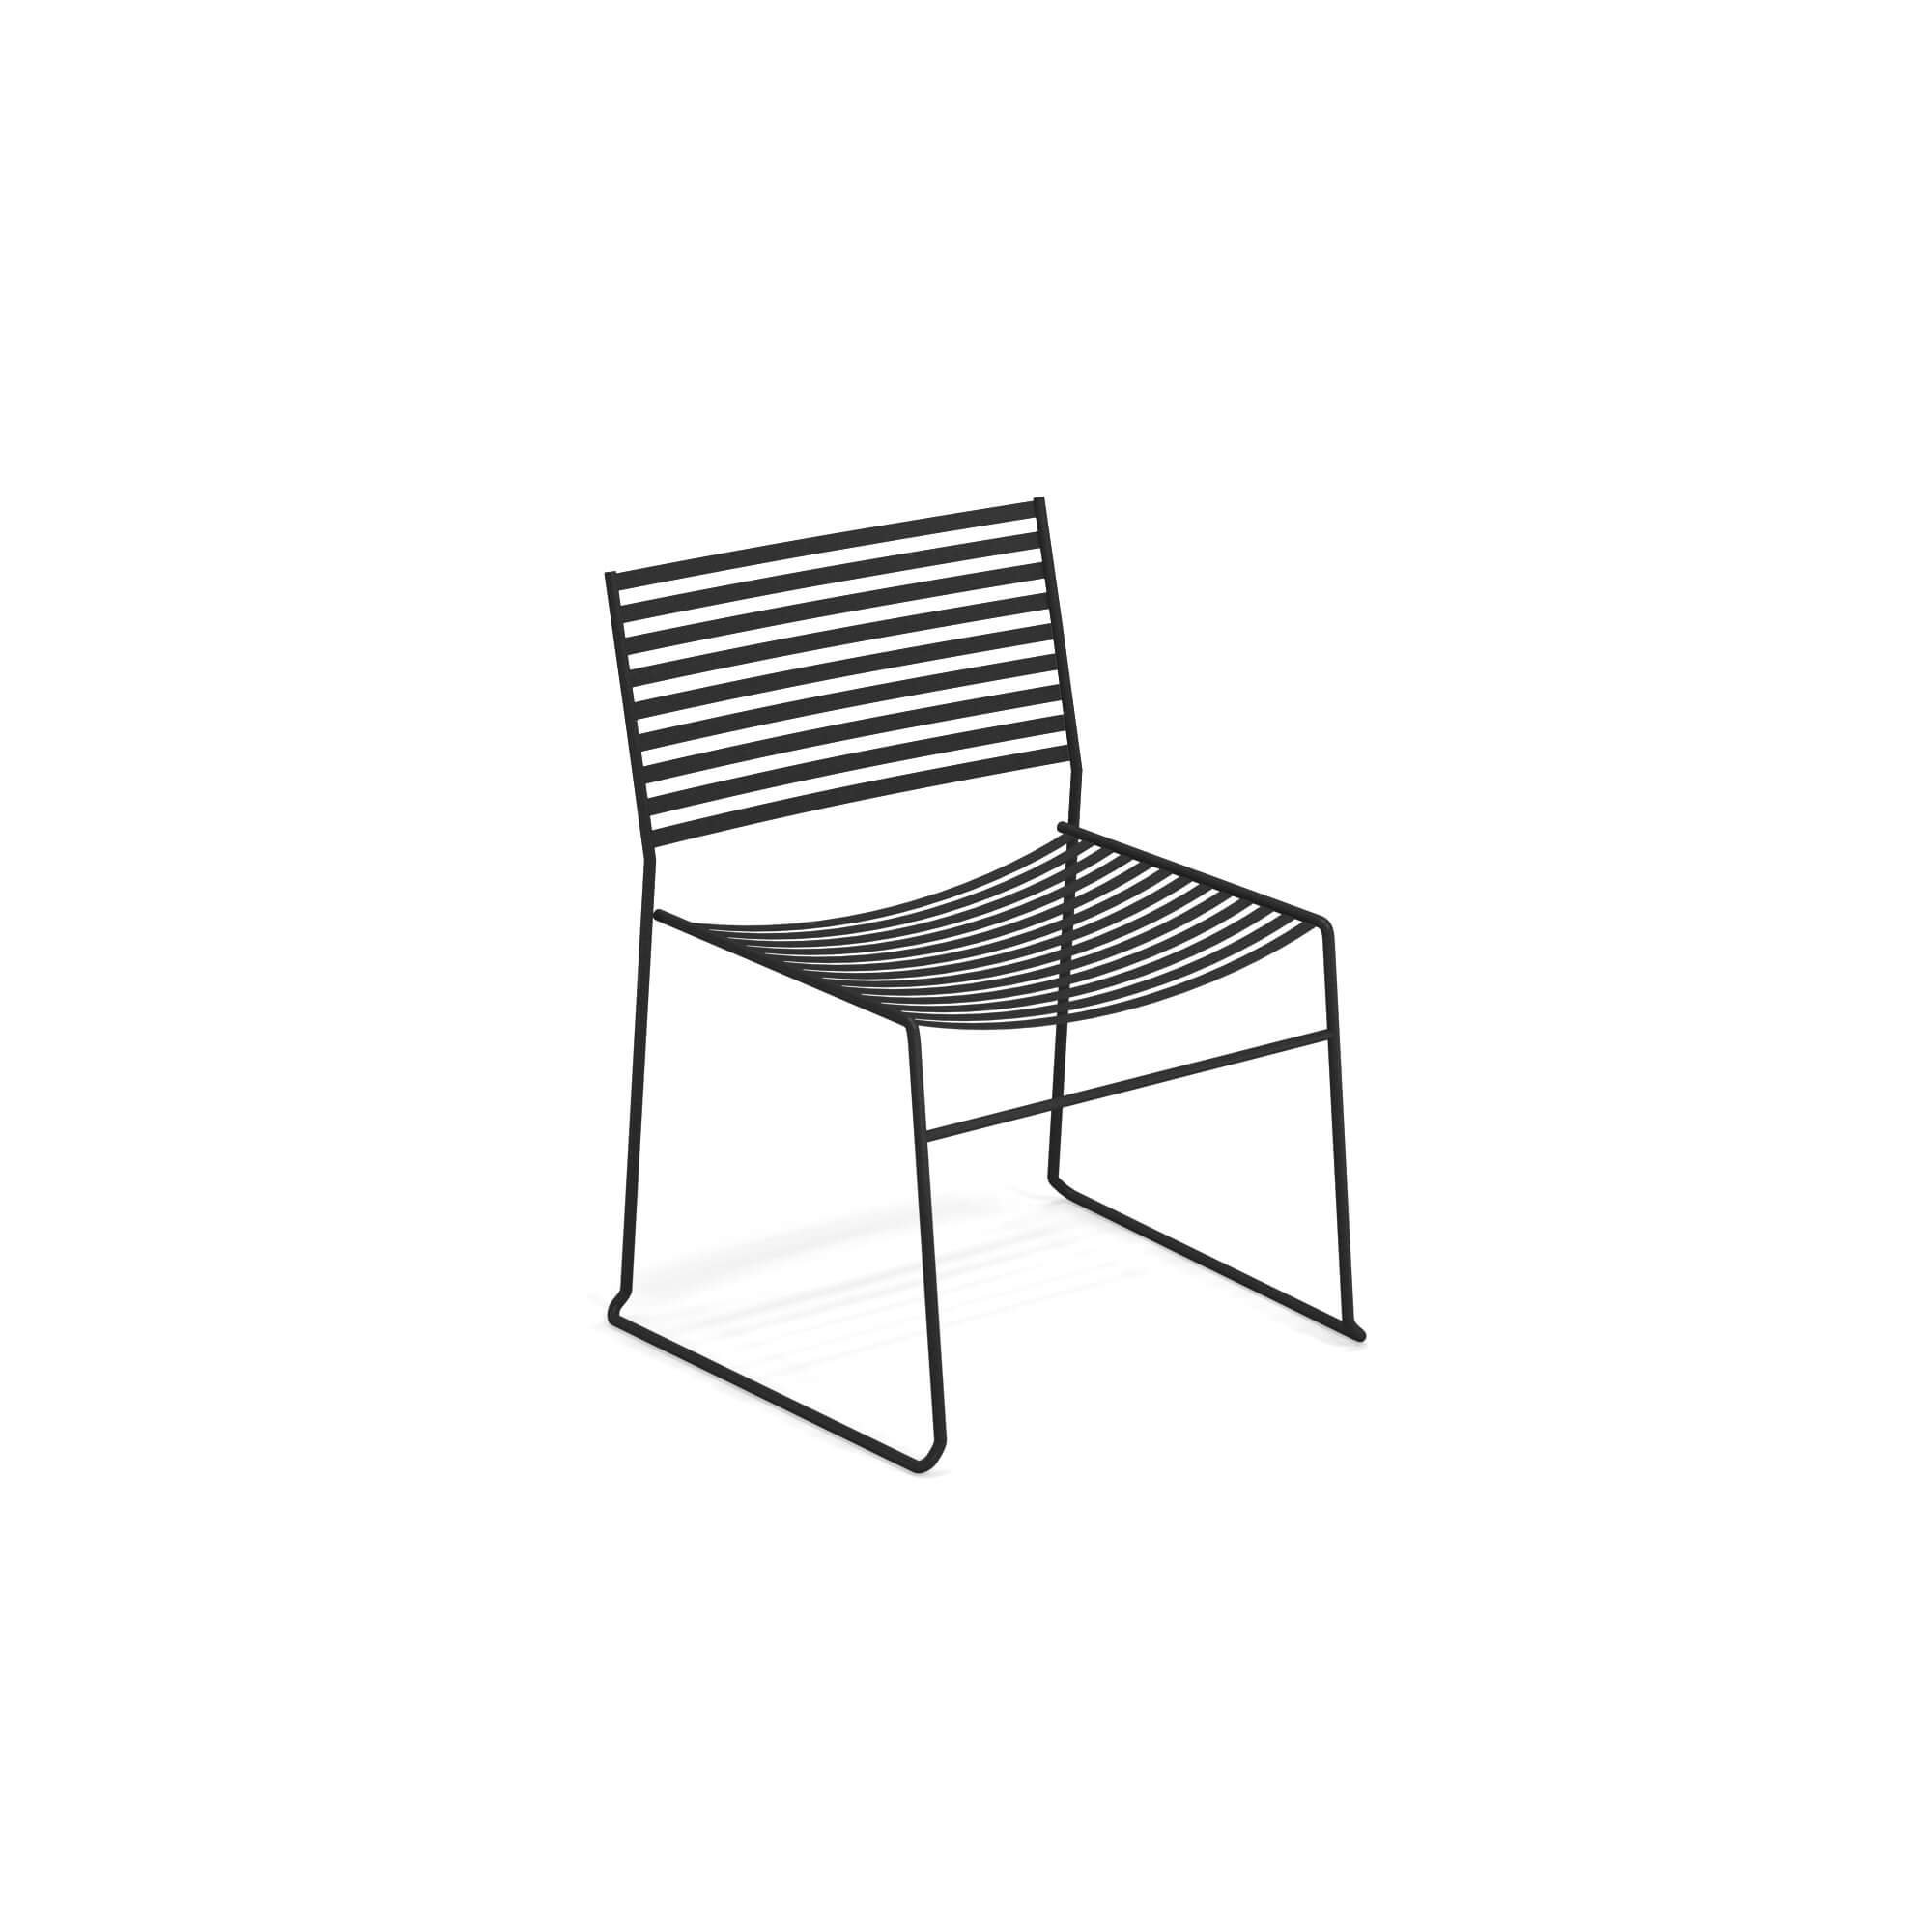 Aero Lounge Chair from Emu, designed by Paul Newman